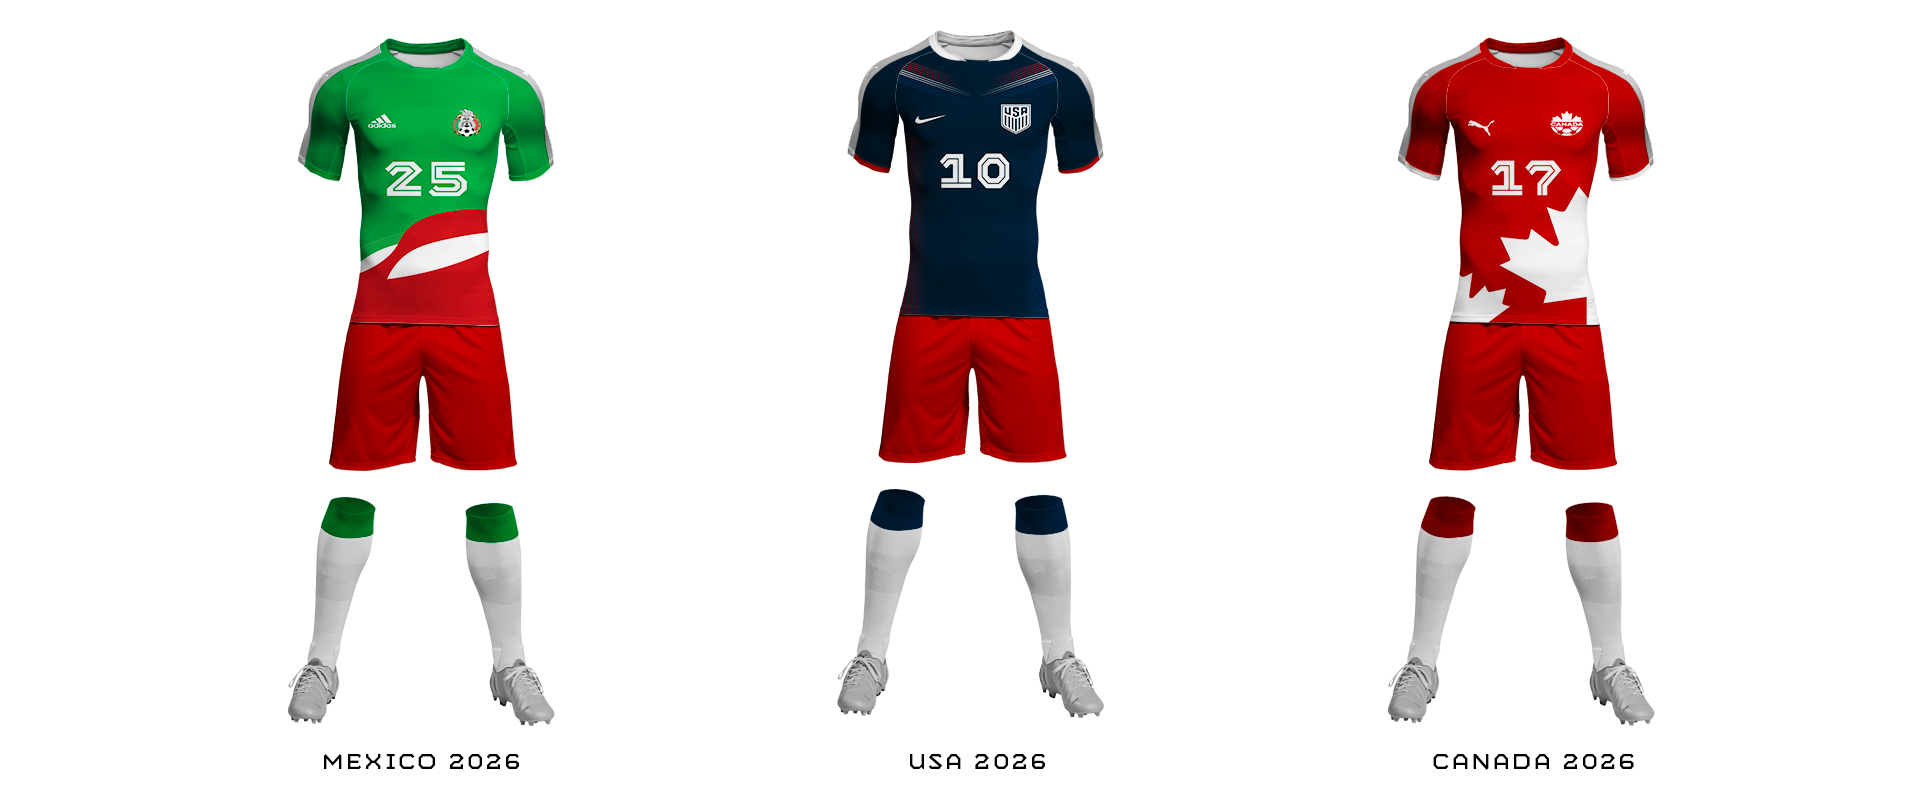 Mexico USA Canada World Cup 2026 Uniforms